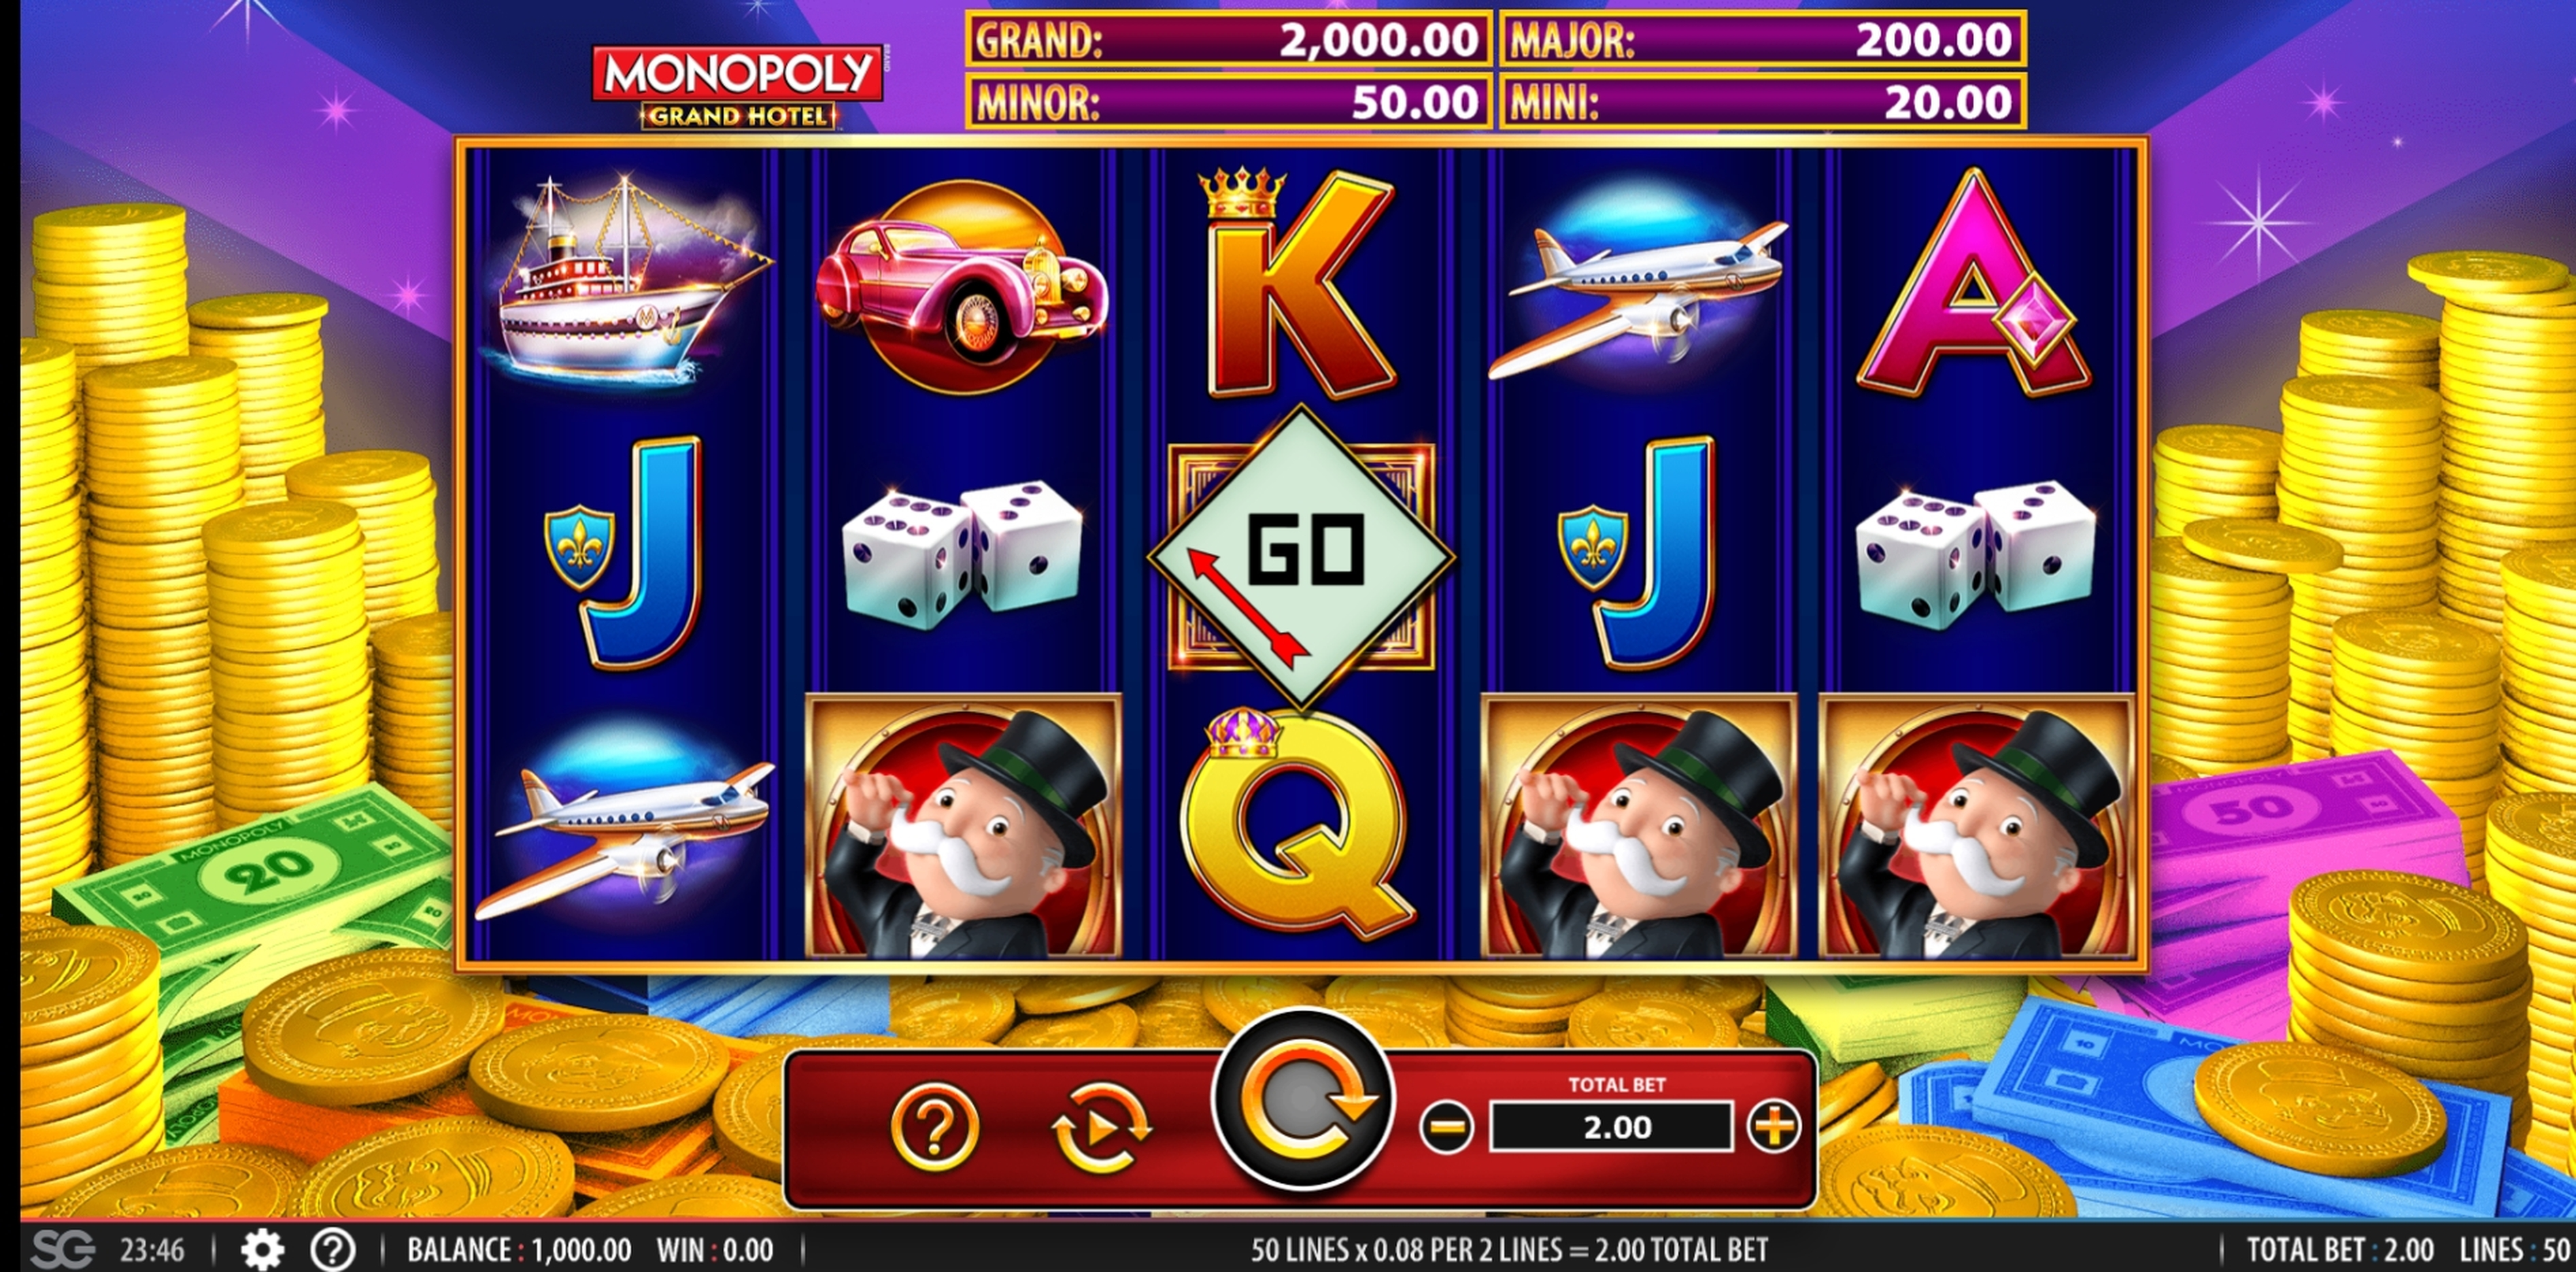 Reels in Monopoly Grand Hotel Slot Game by WMS